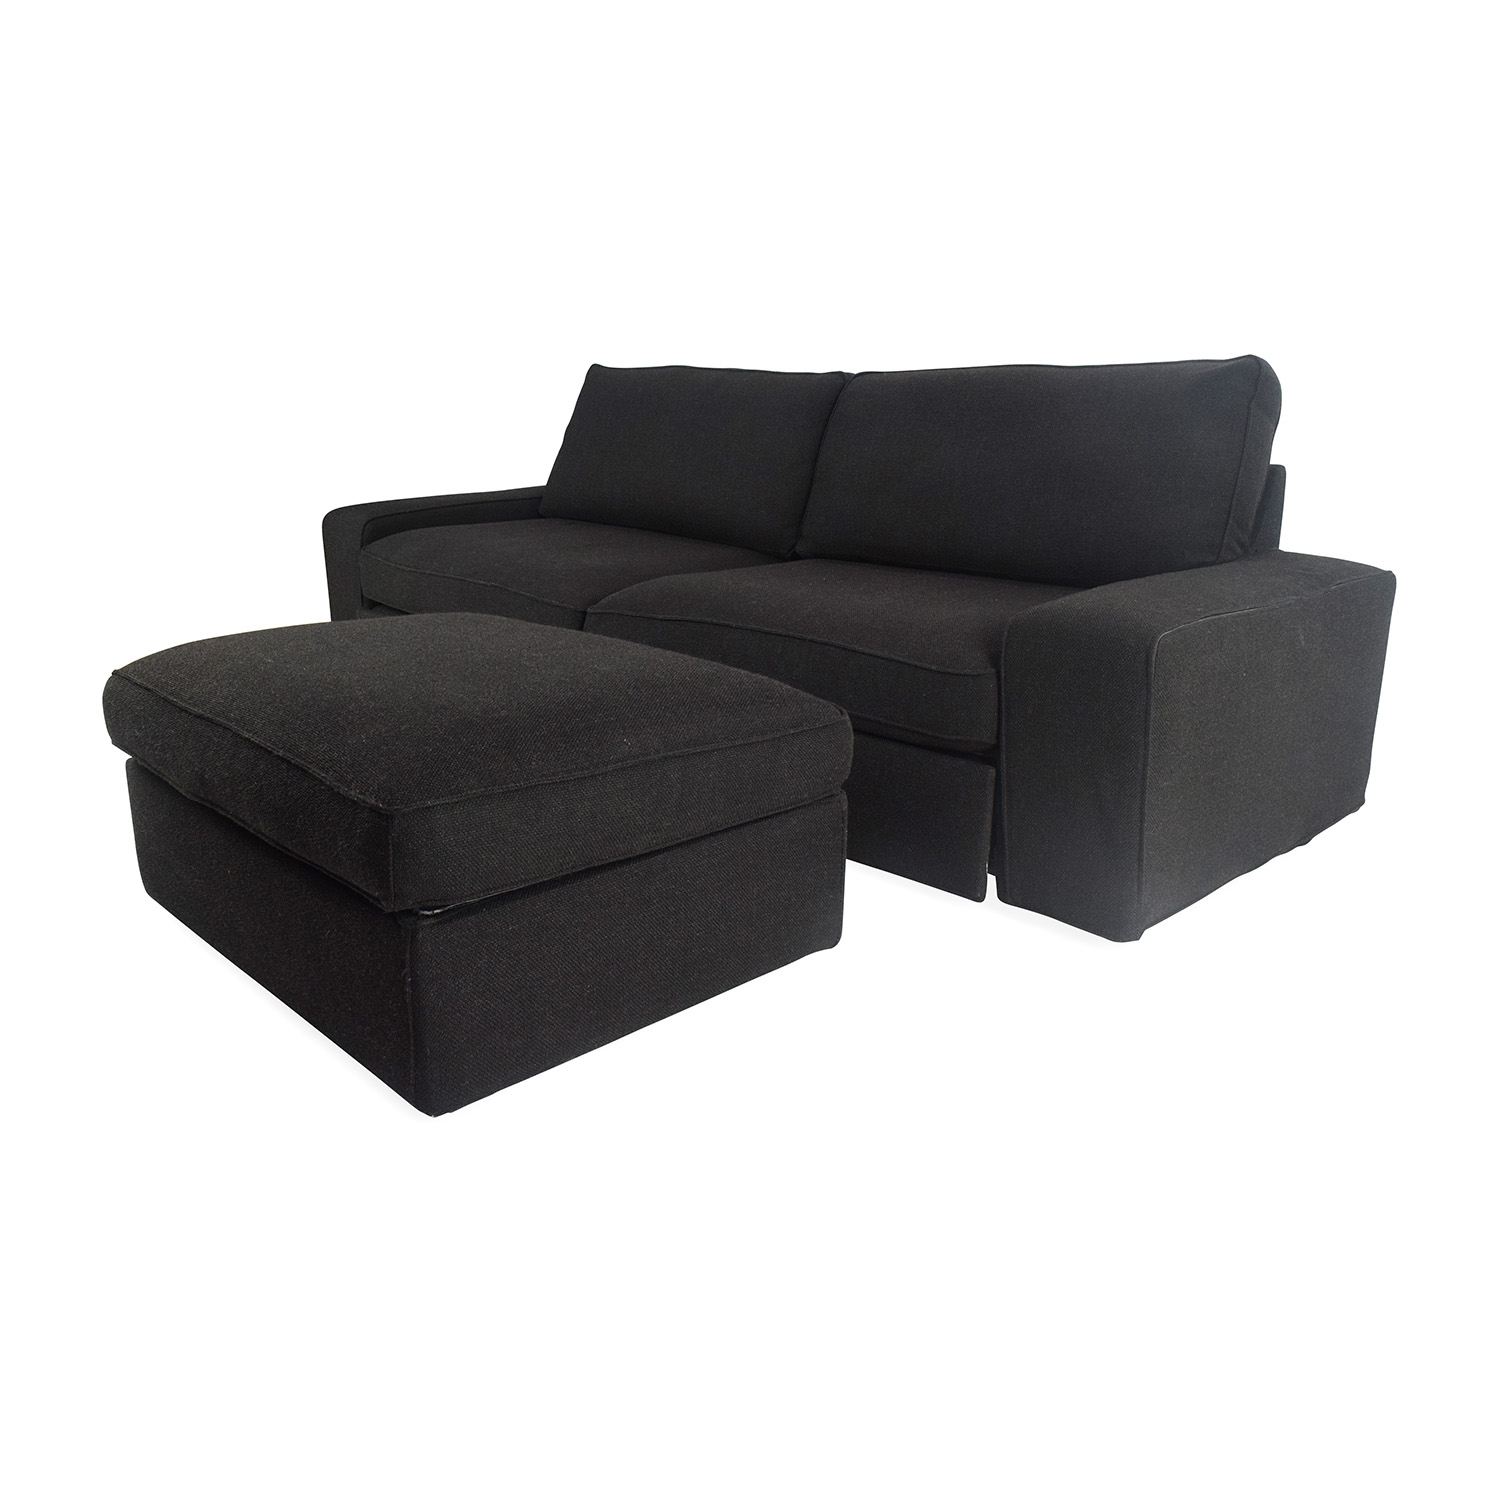 sofas with ottomans thesofa. Black Bedroom Furniture Sets. Home Design Ideas